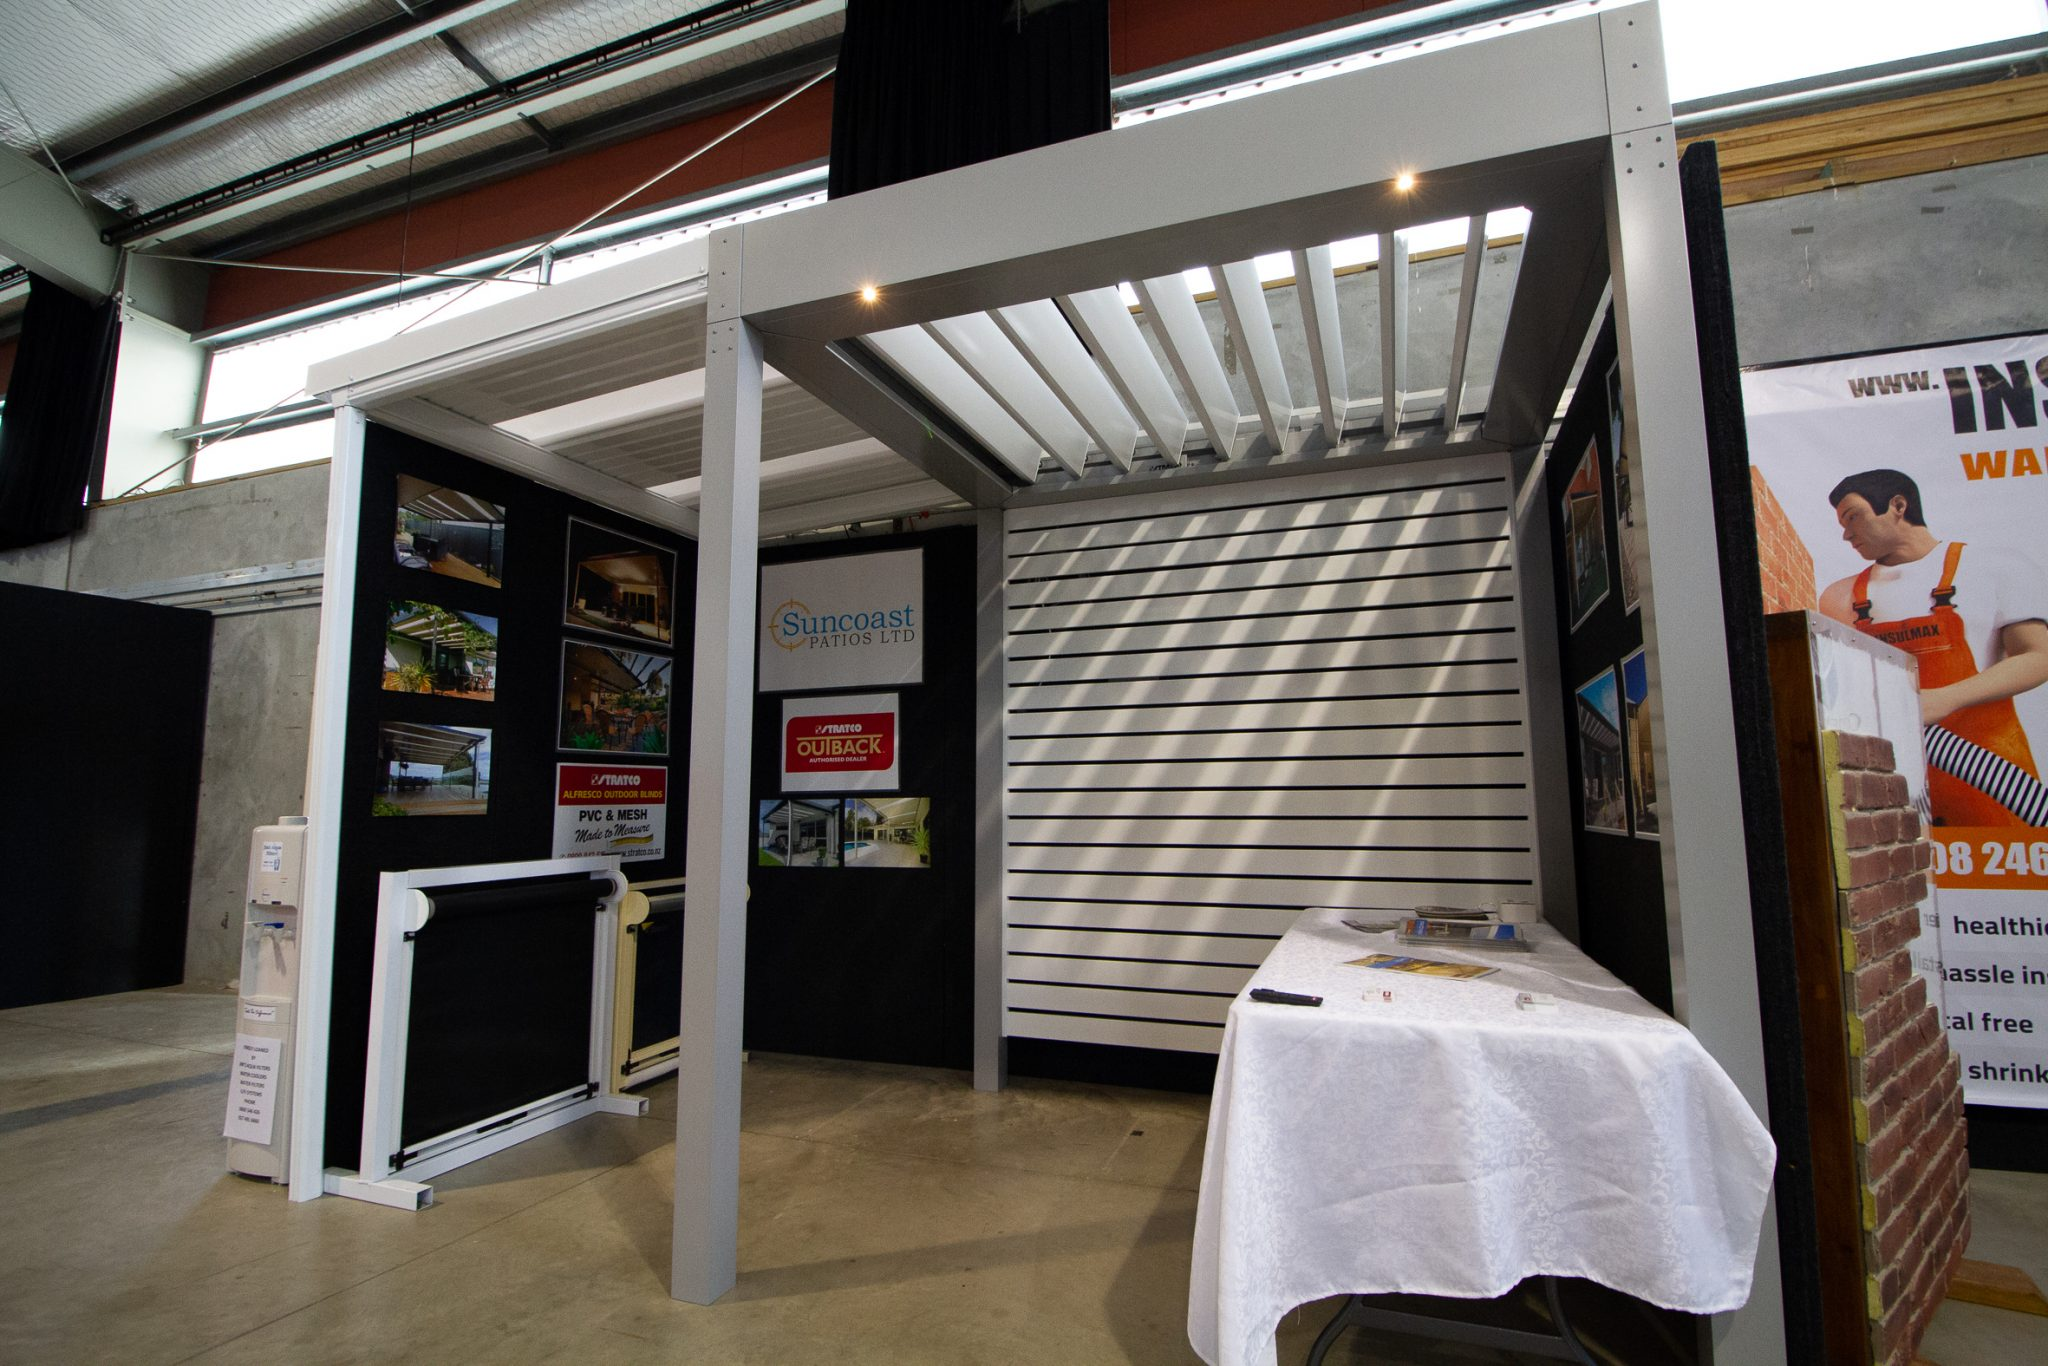 The Suncoast Patios Ltd stand at the Gisborne Home and Lifestyle expo 2018